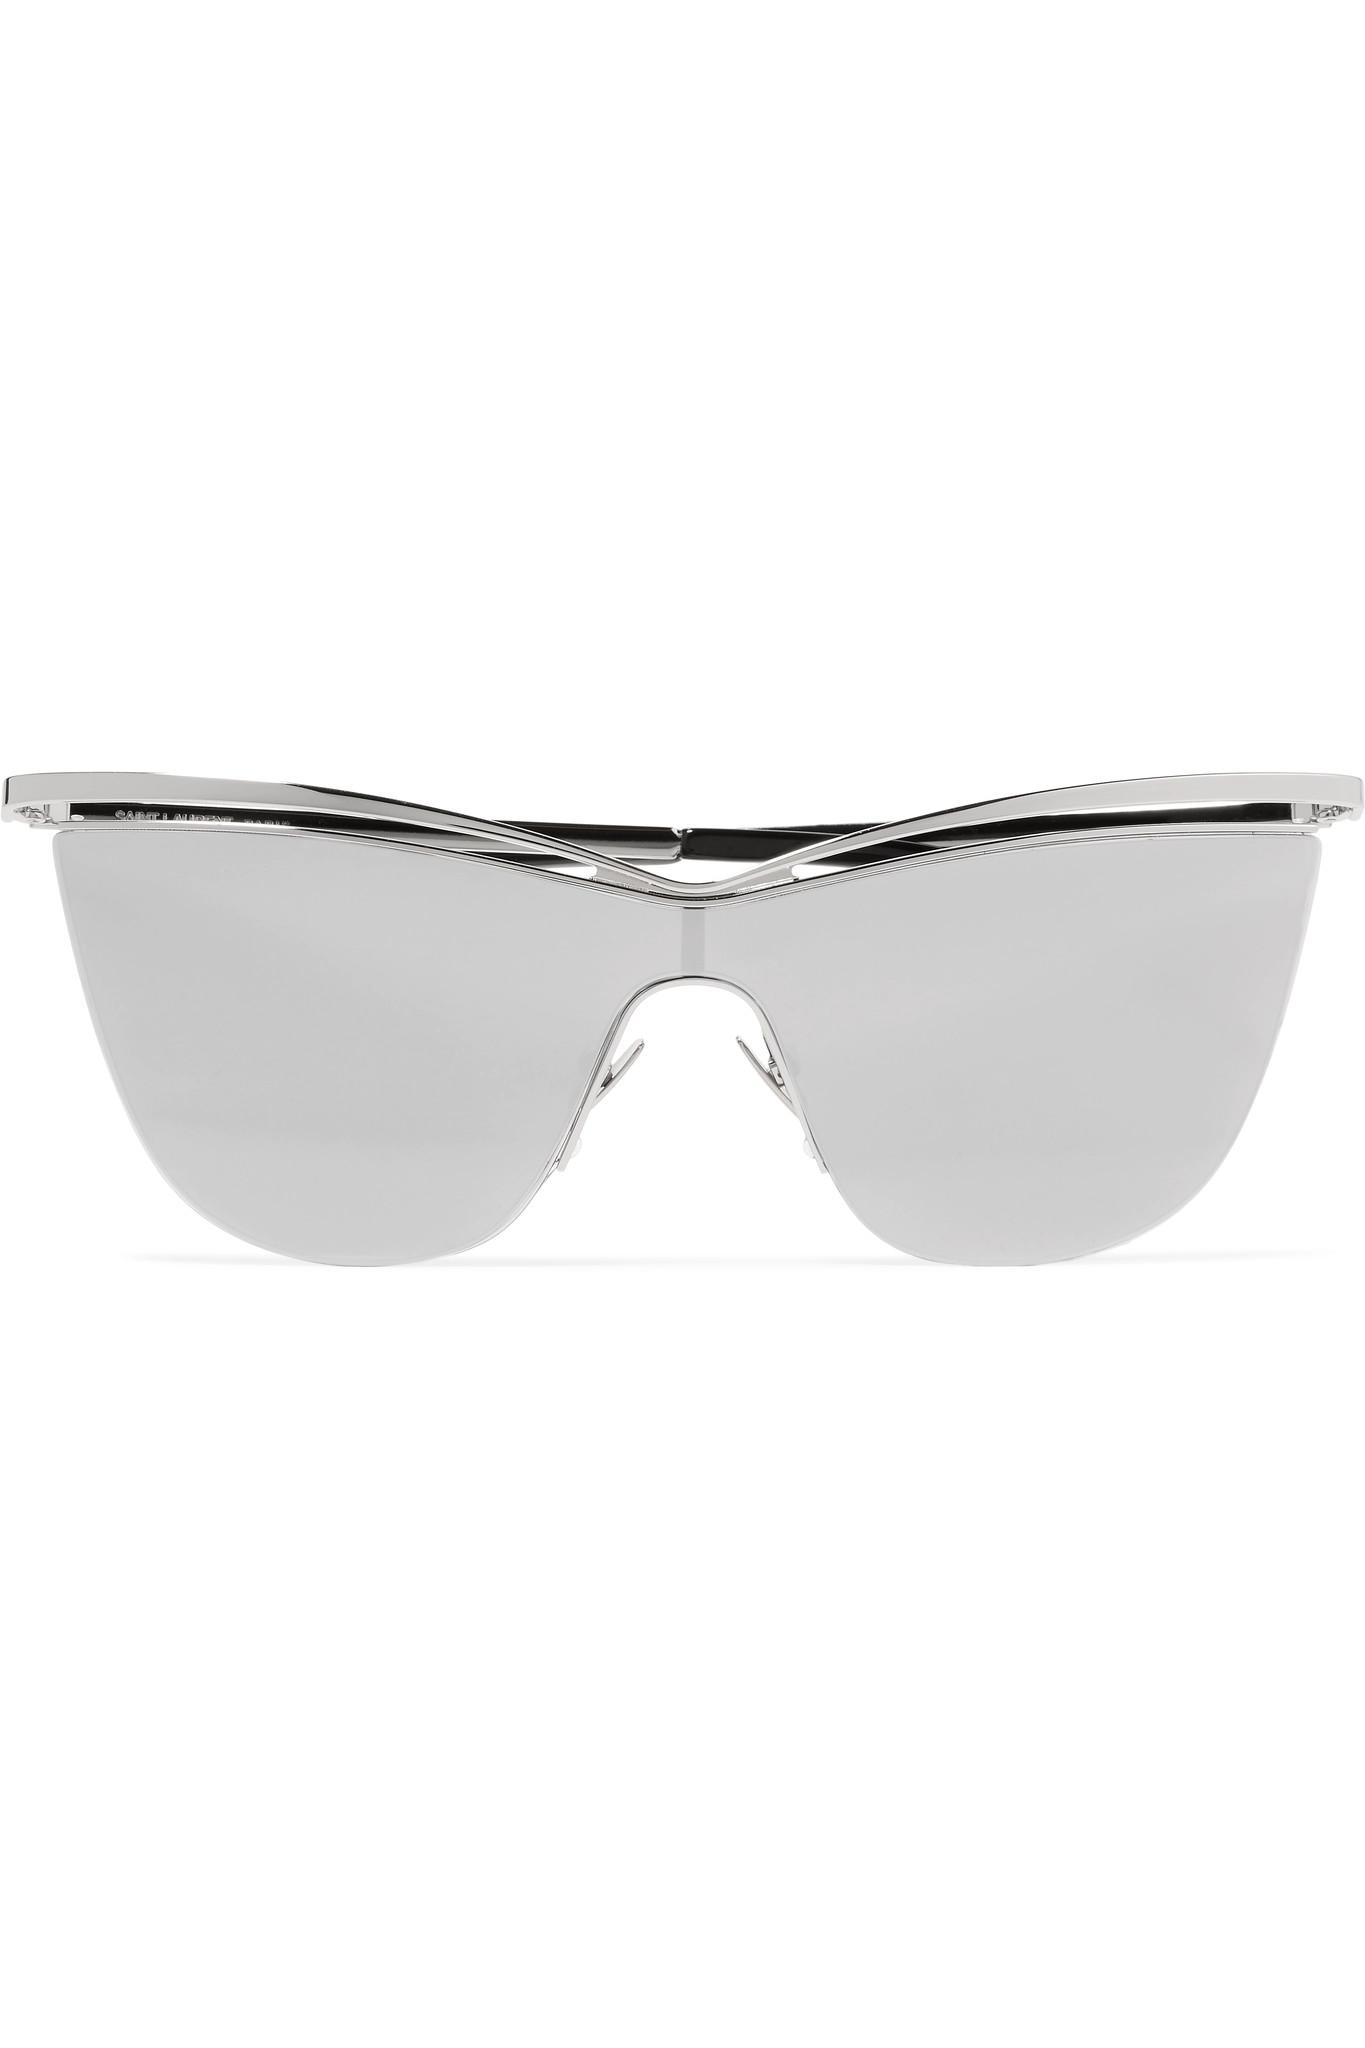 6c9ed62a5f34e Lyst - Saint Laurent Cat-eye Silver-tone And Acetate Mirrored ...